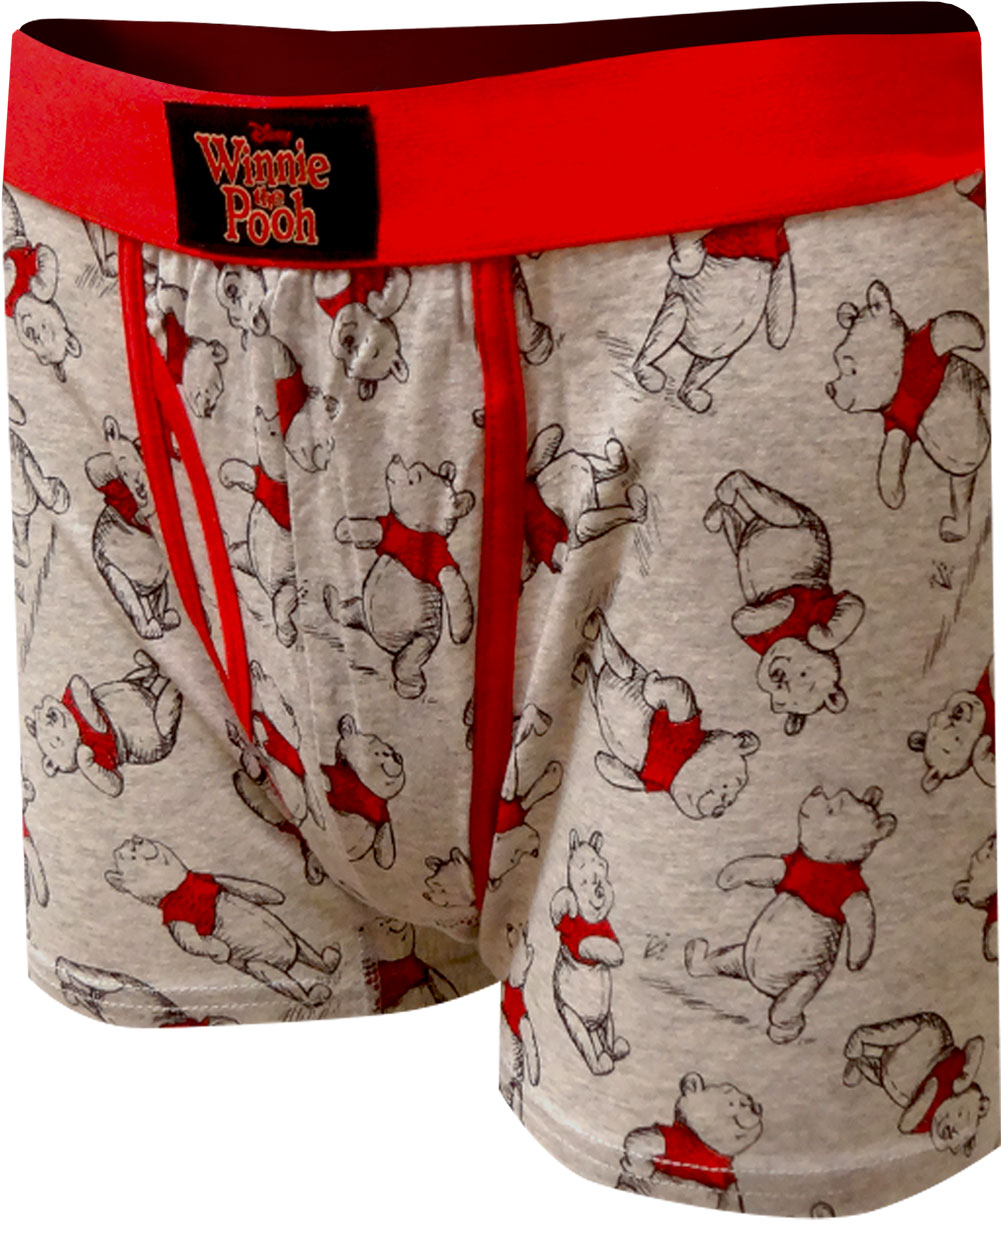 Image of Disney's Winnie The Pooh Boxer Briefs for men